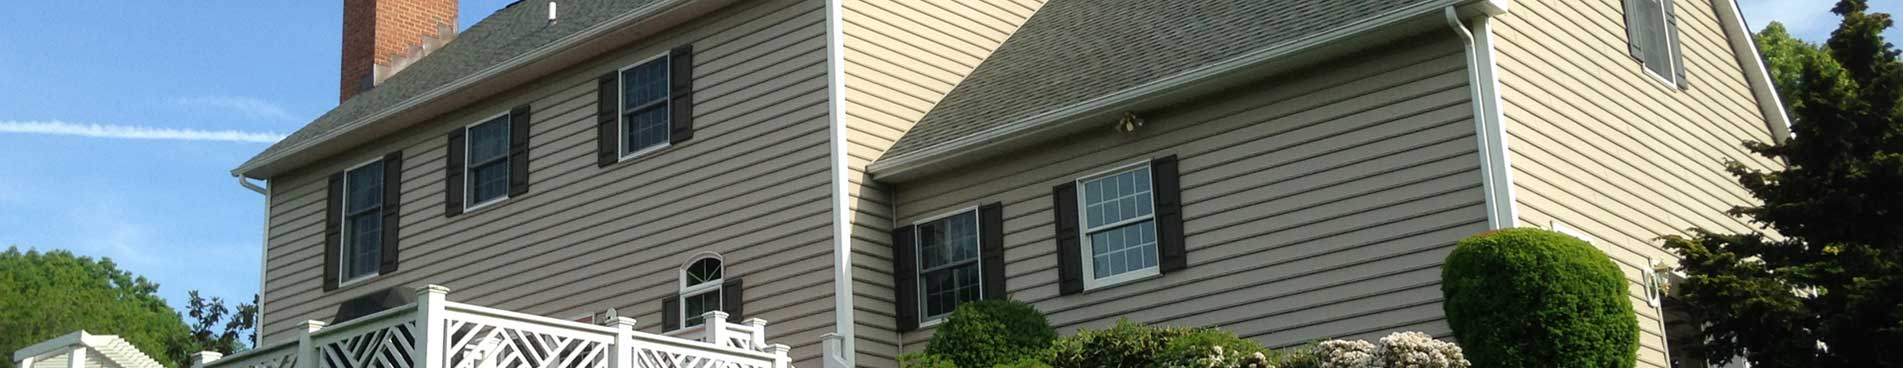 Roofing Hanover PA